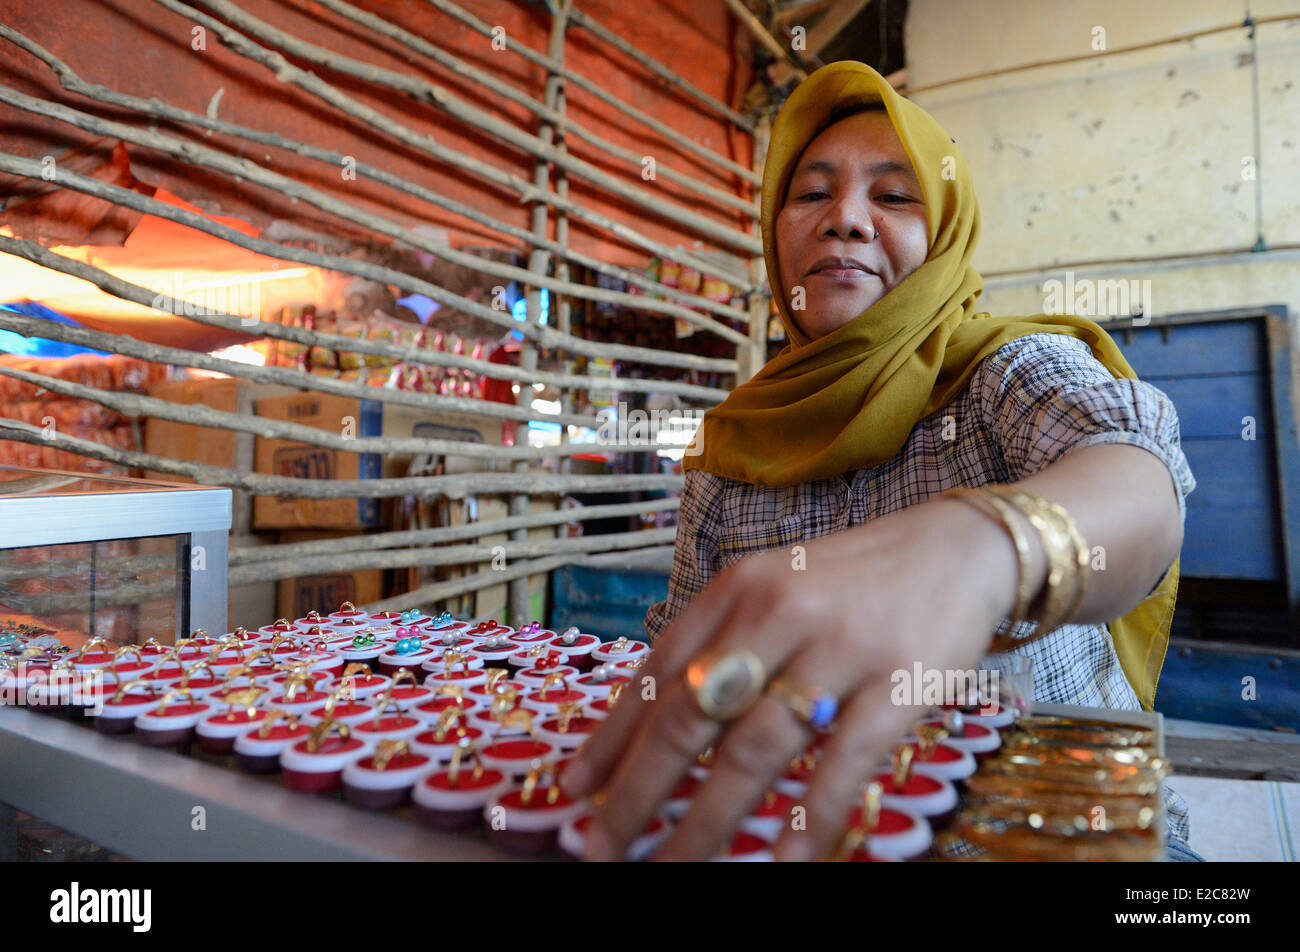 Indonesia, Sumbawa, Dompu, sale of jewels at the market - Stock Image